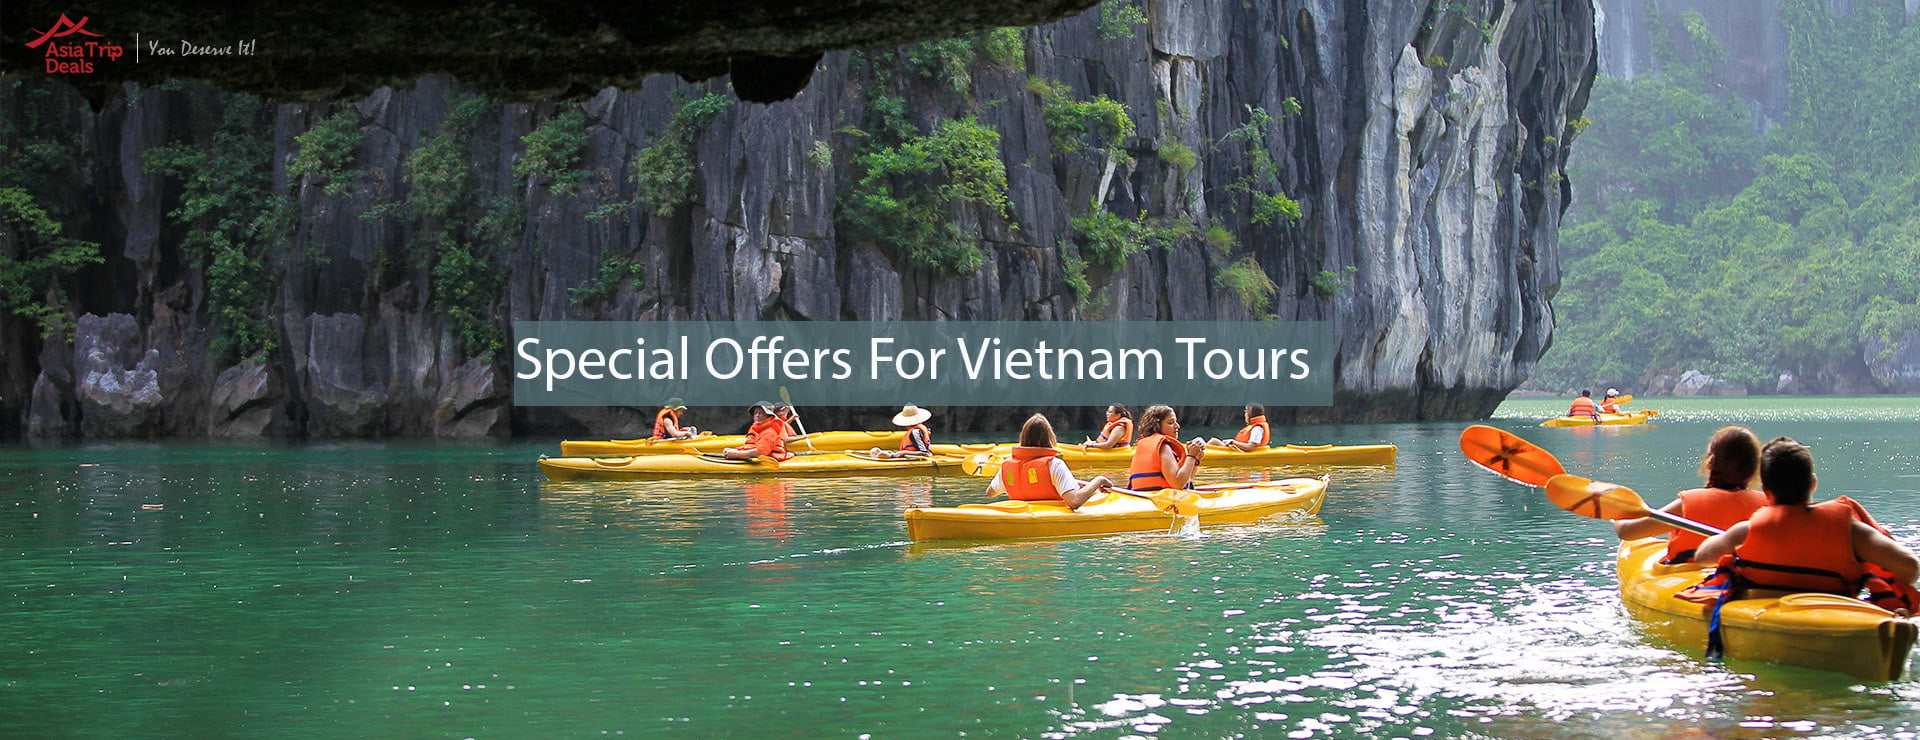 Up To 30% Off!! Don't Miss Our Best Deals For Your Holiday In Vietnam